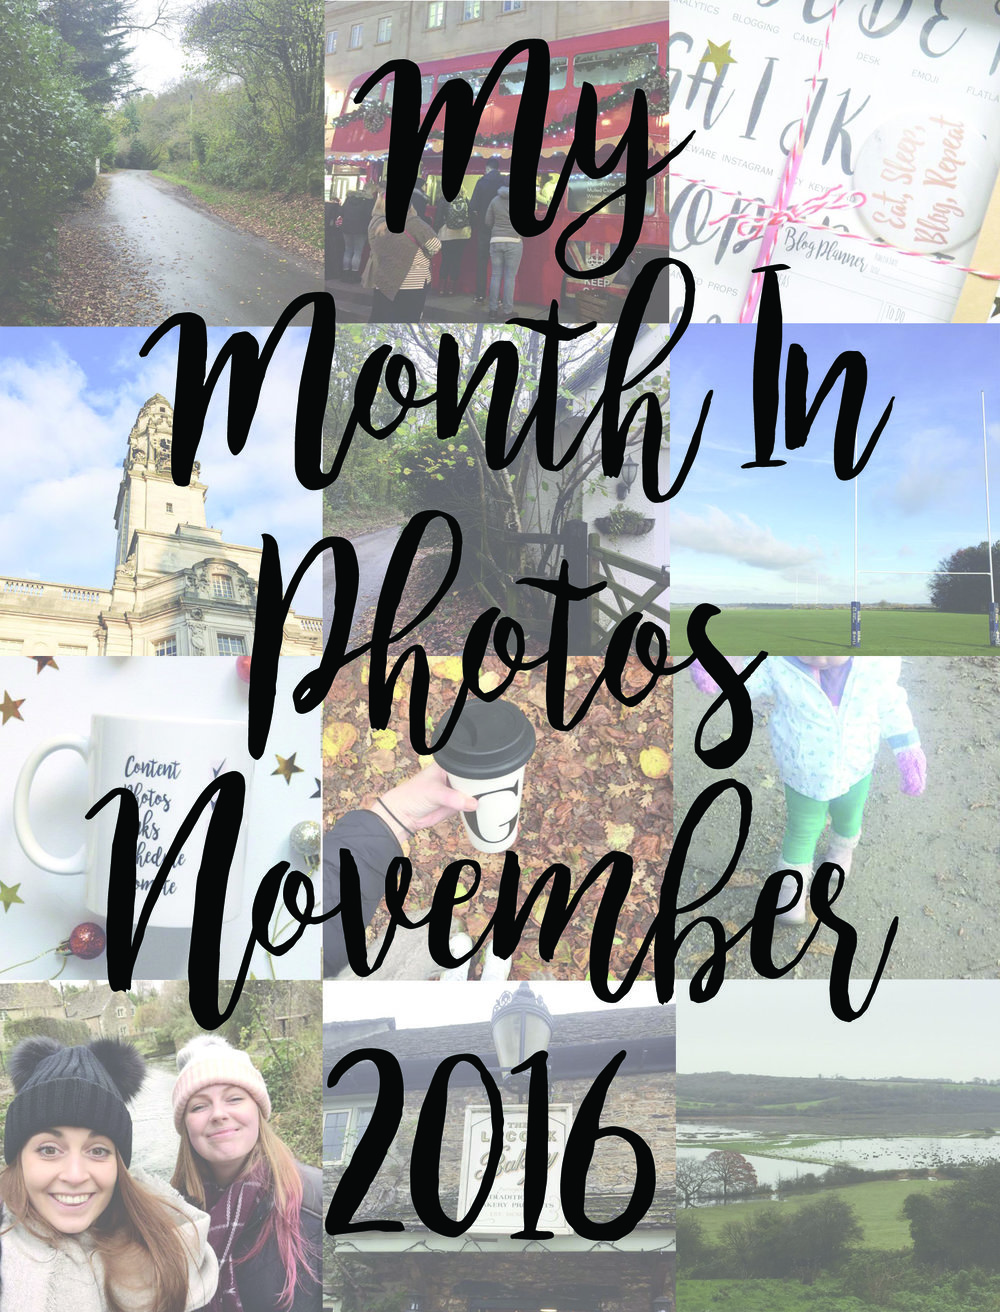 My month in photos - November 2016.